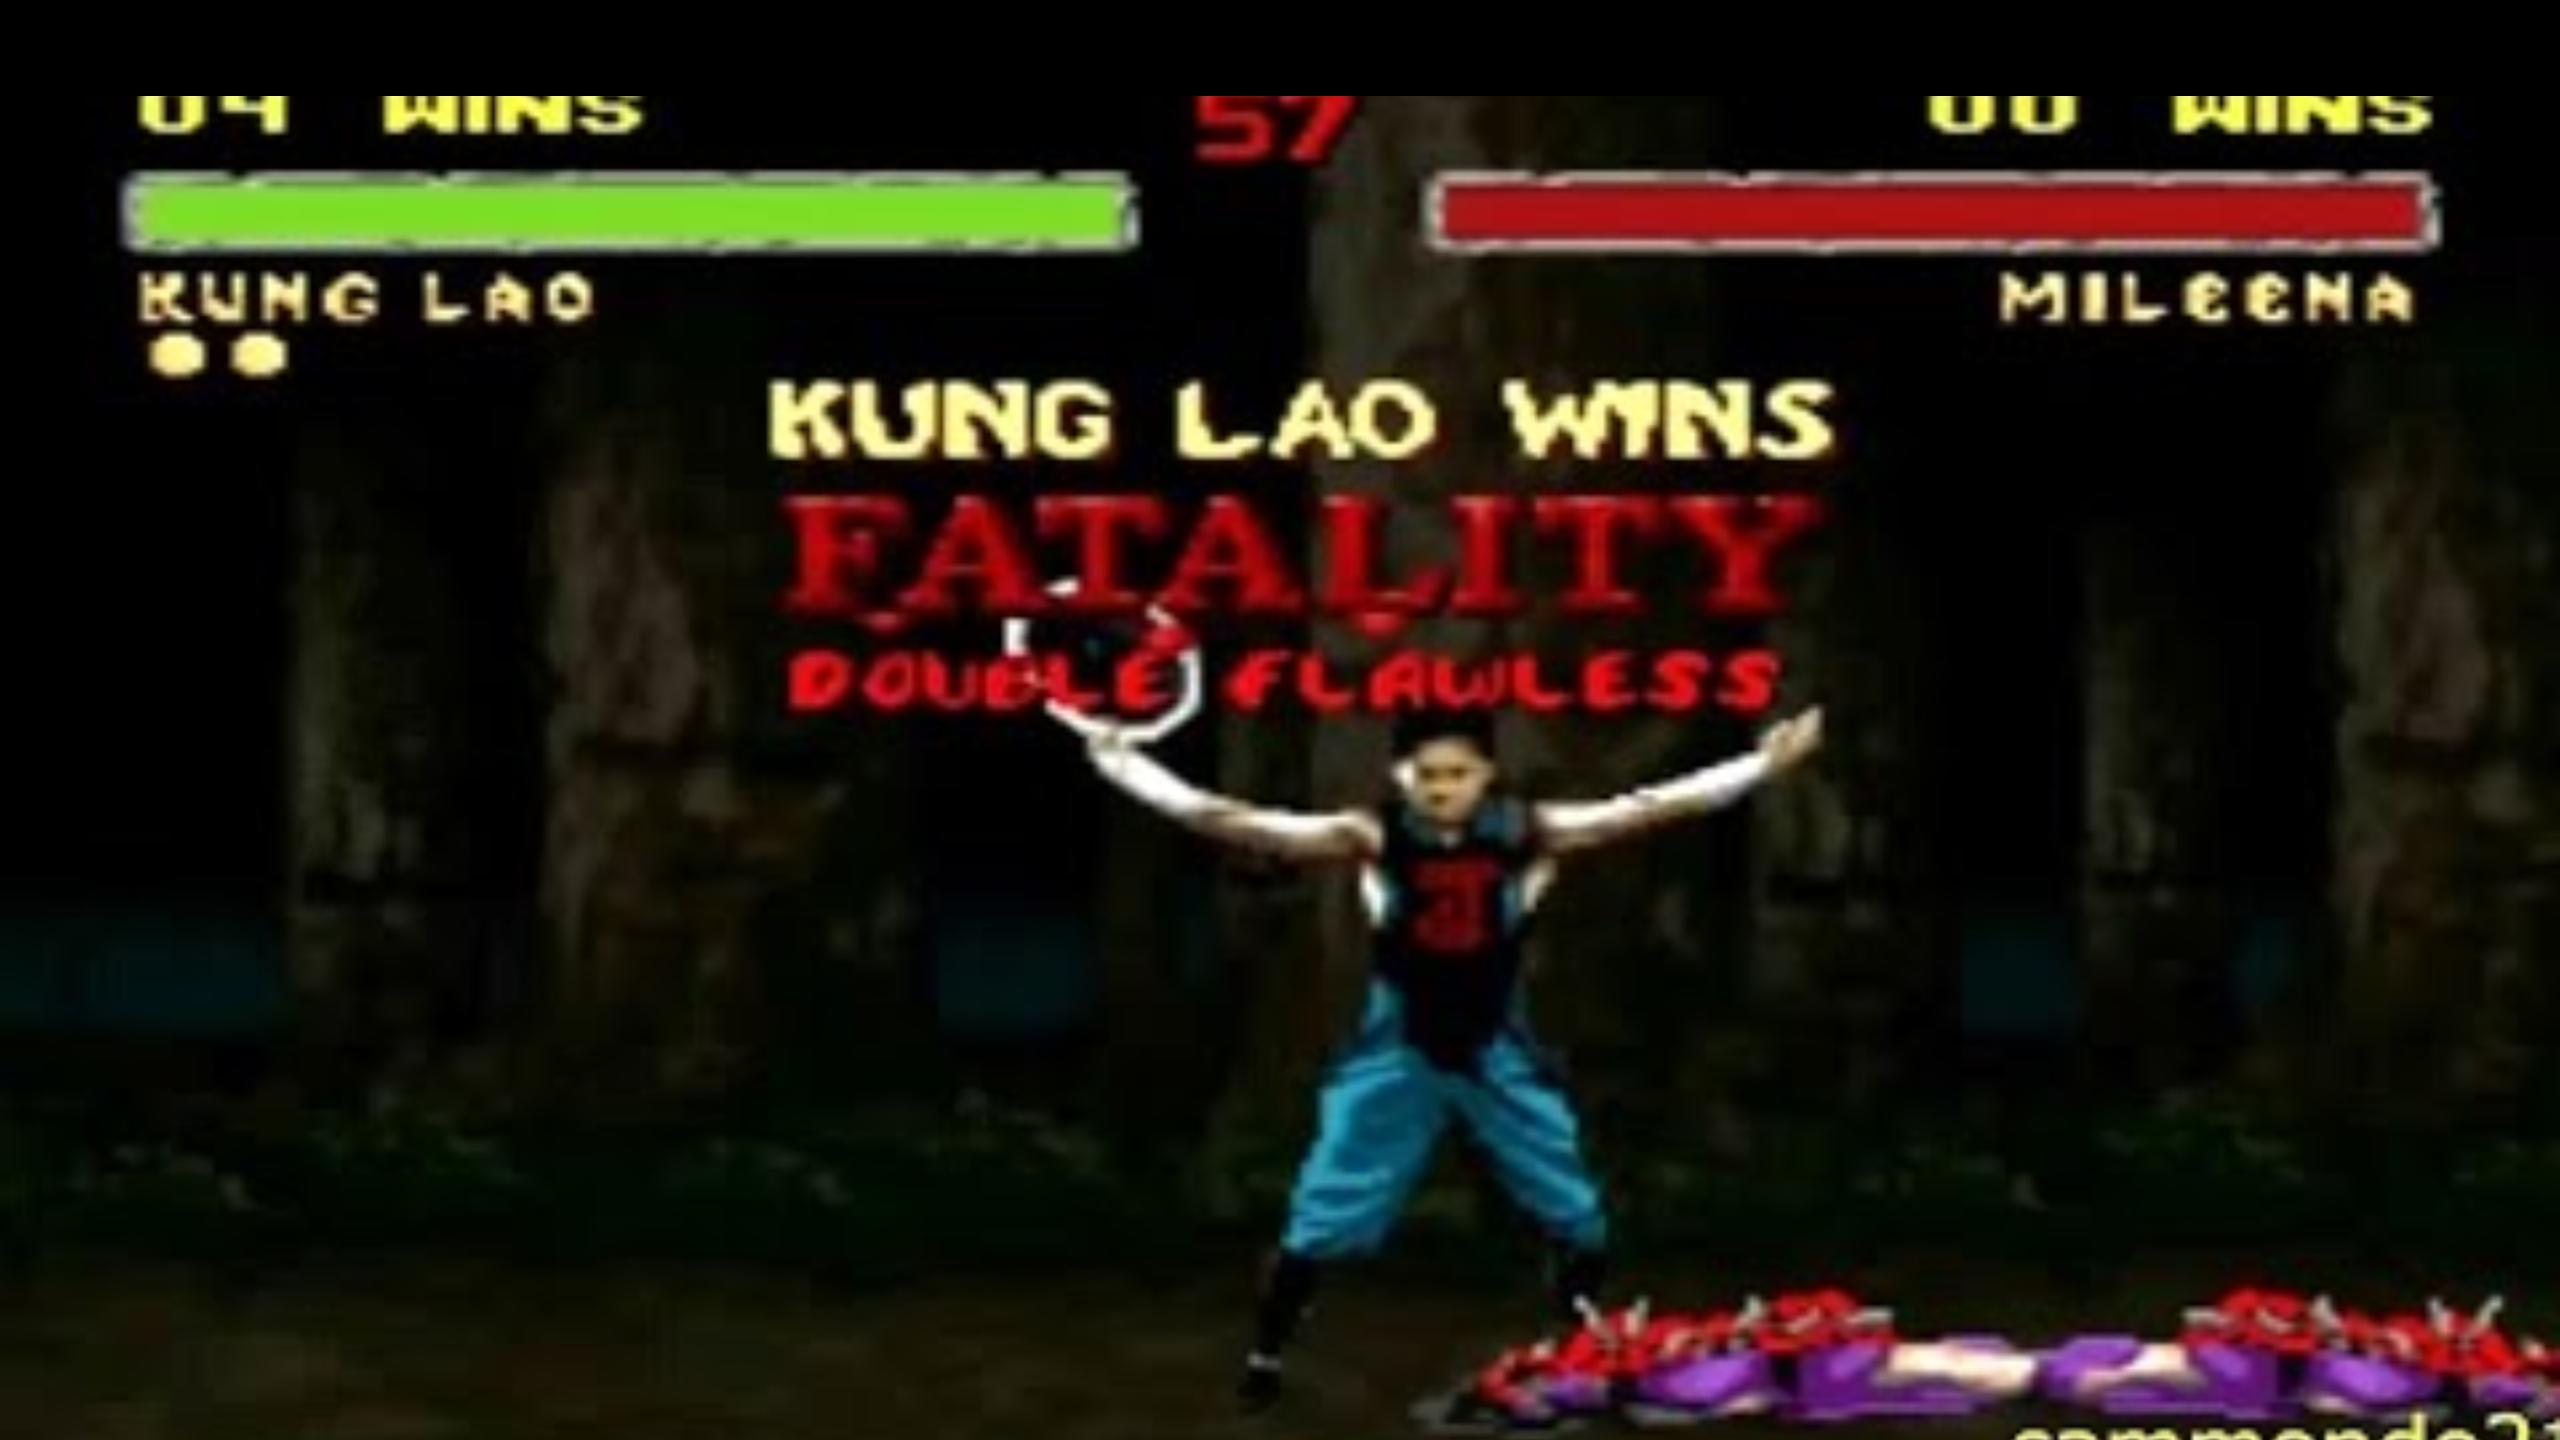 Mortal Kombat Fatalities for Android - APK Download